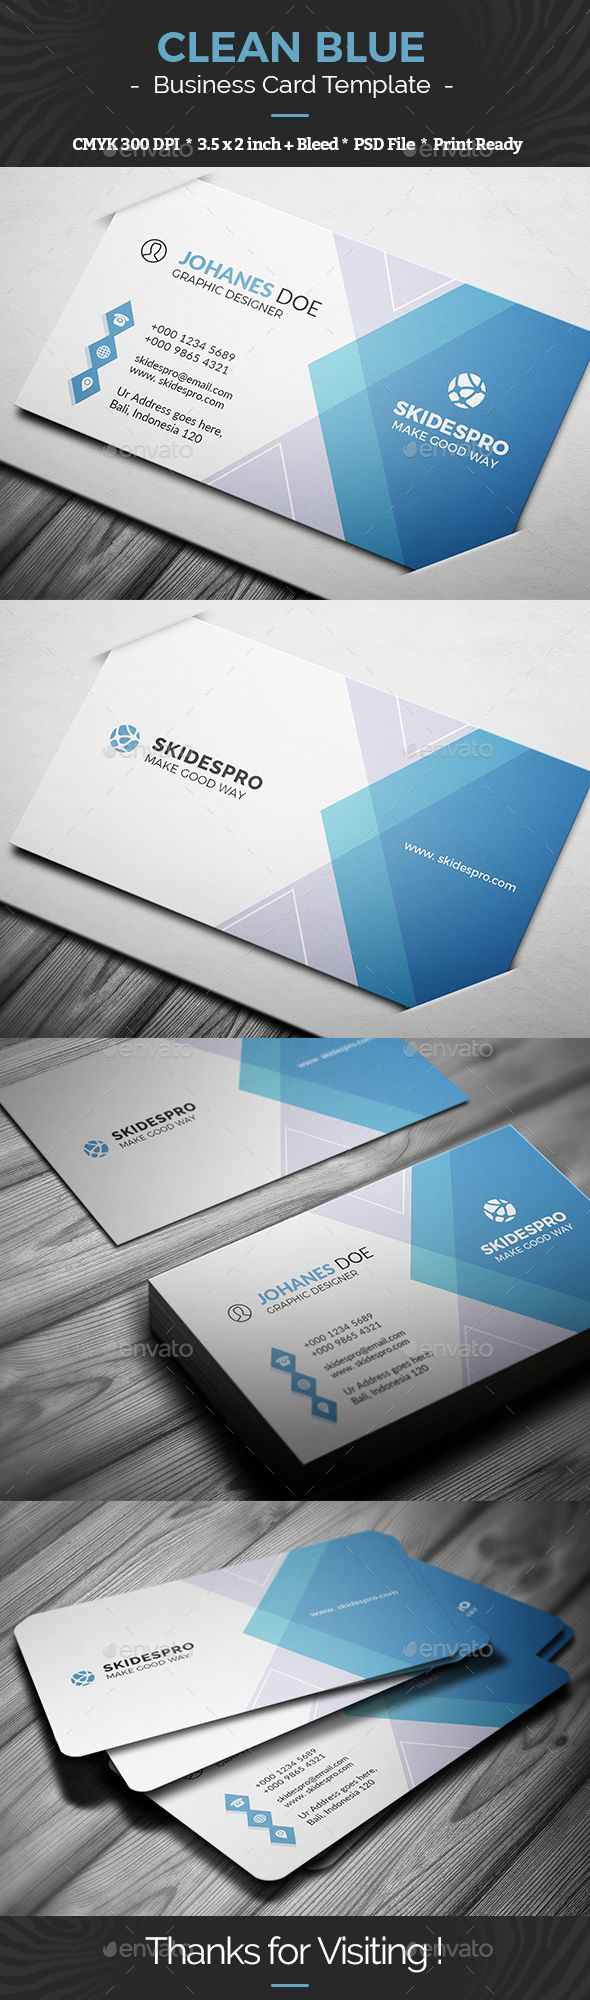 Clean Blue Business Card Template Business Card Template Psd Blue Business Card